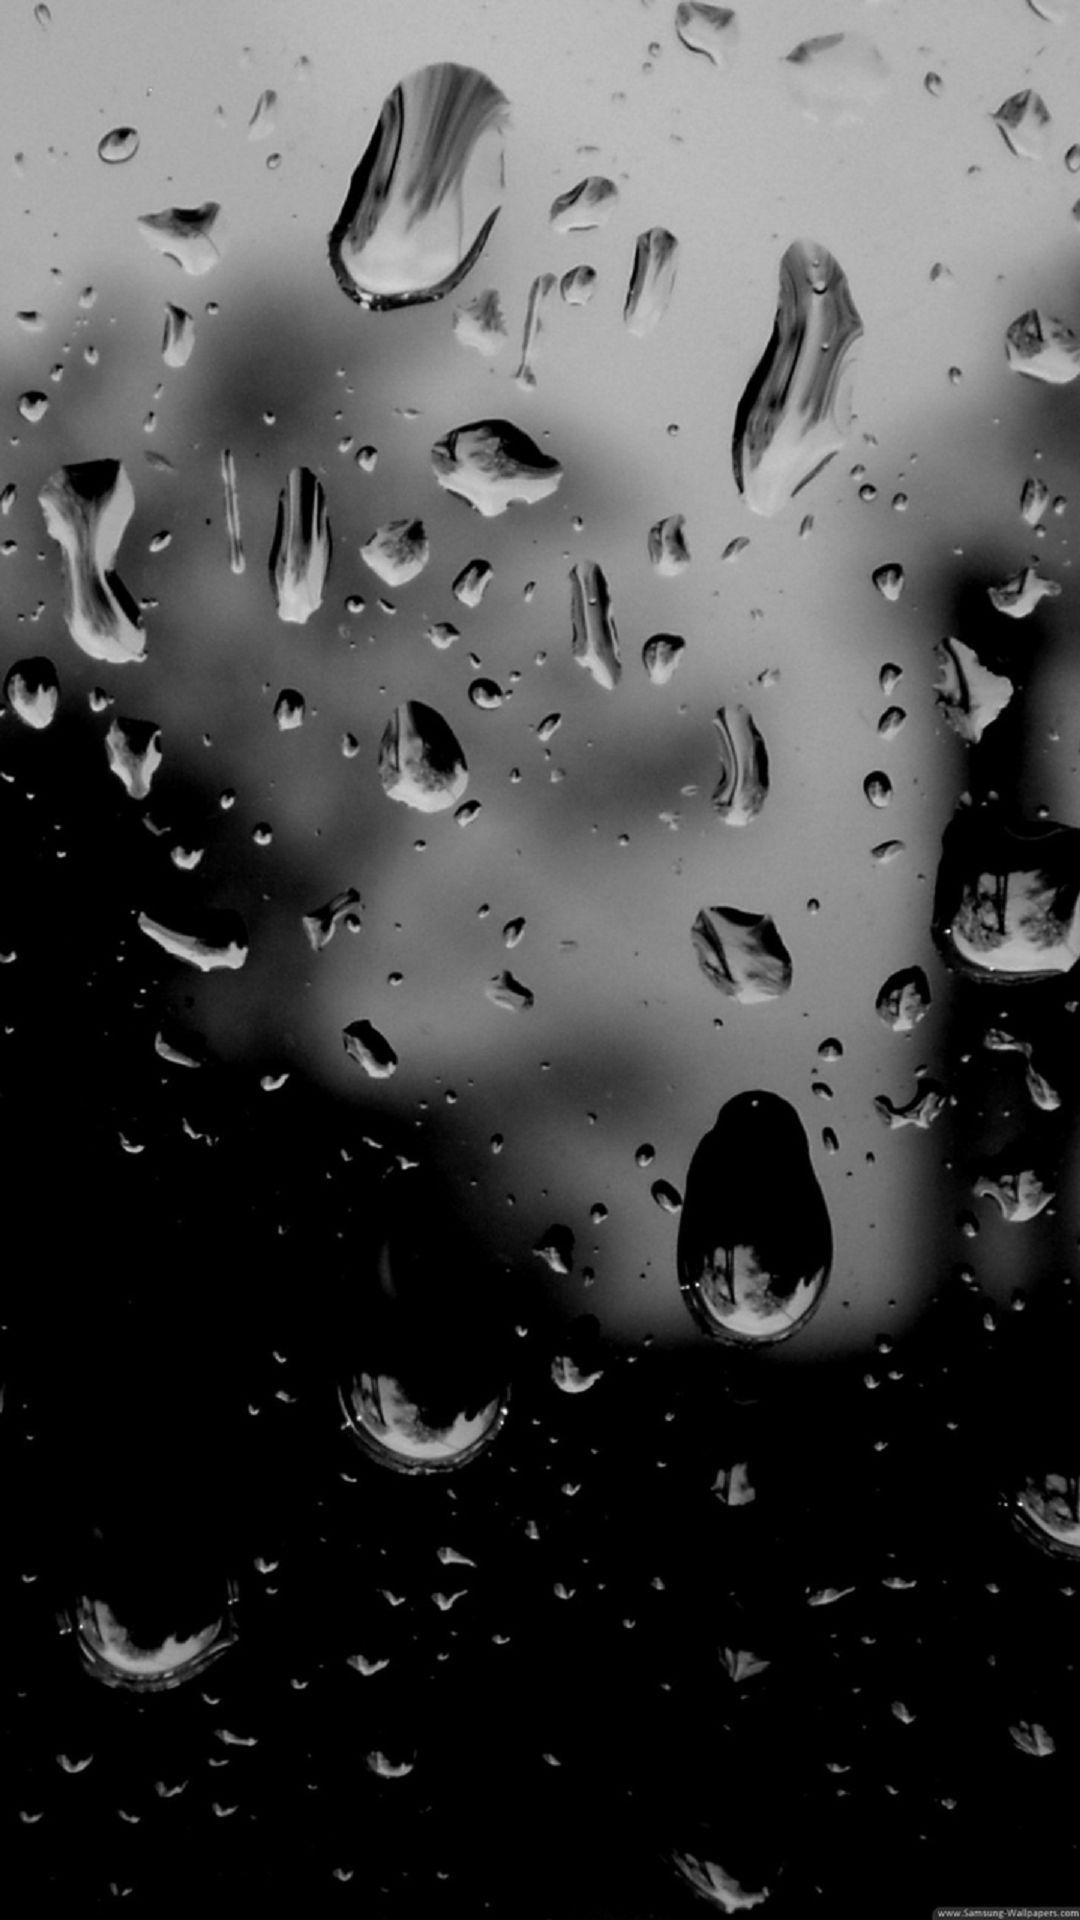 White Raindrops Wallpaper Ipad mini wallpaper, Iphone